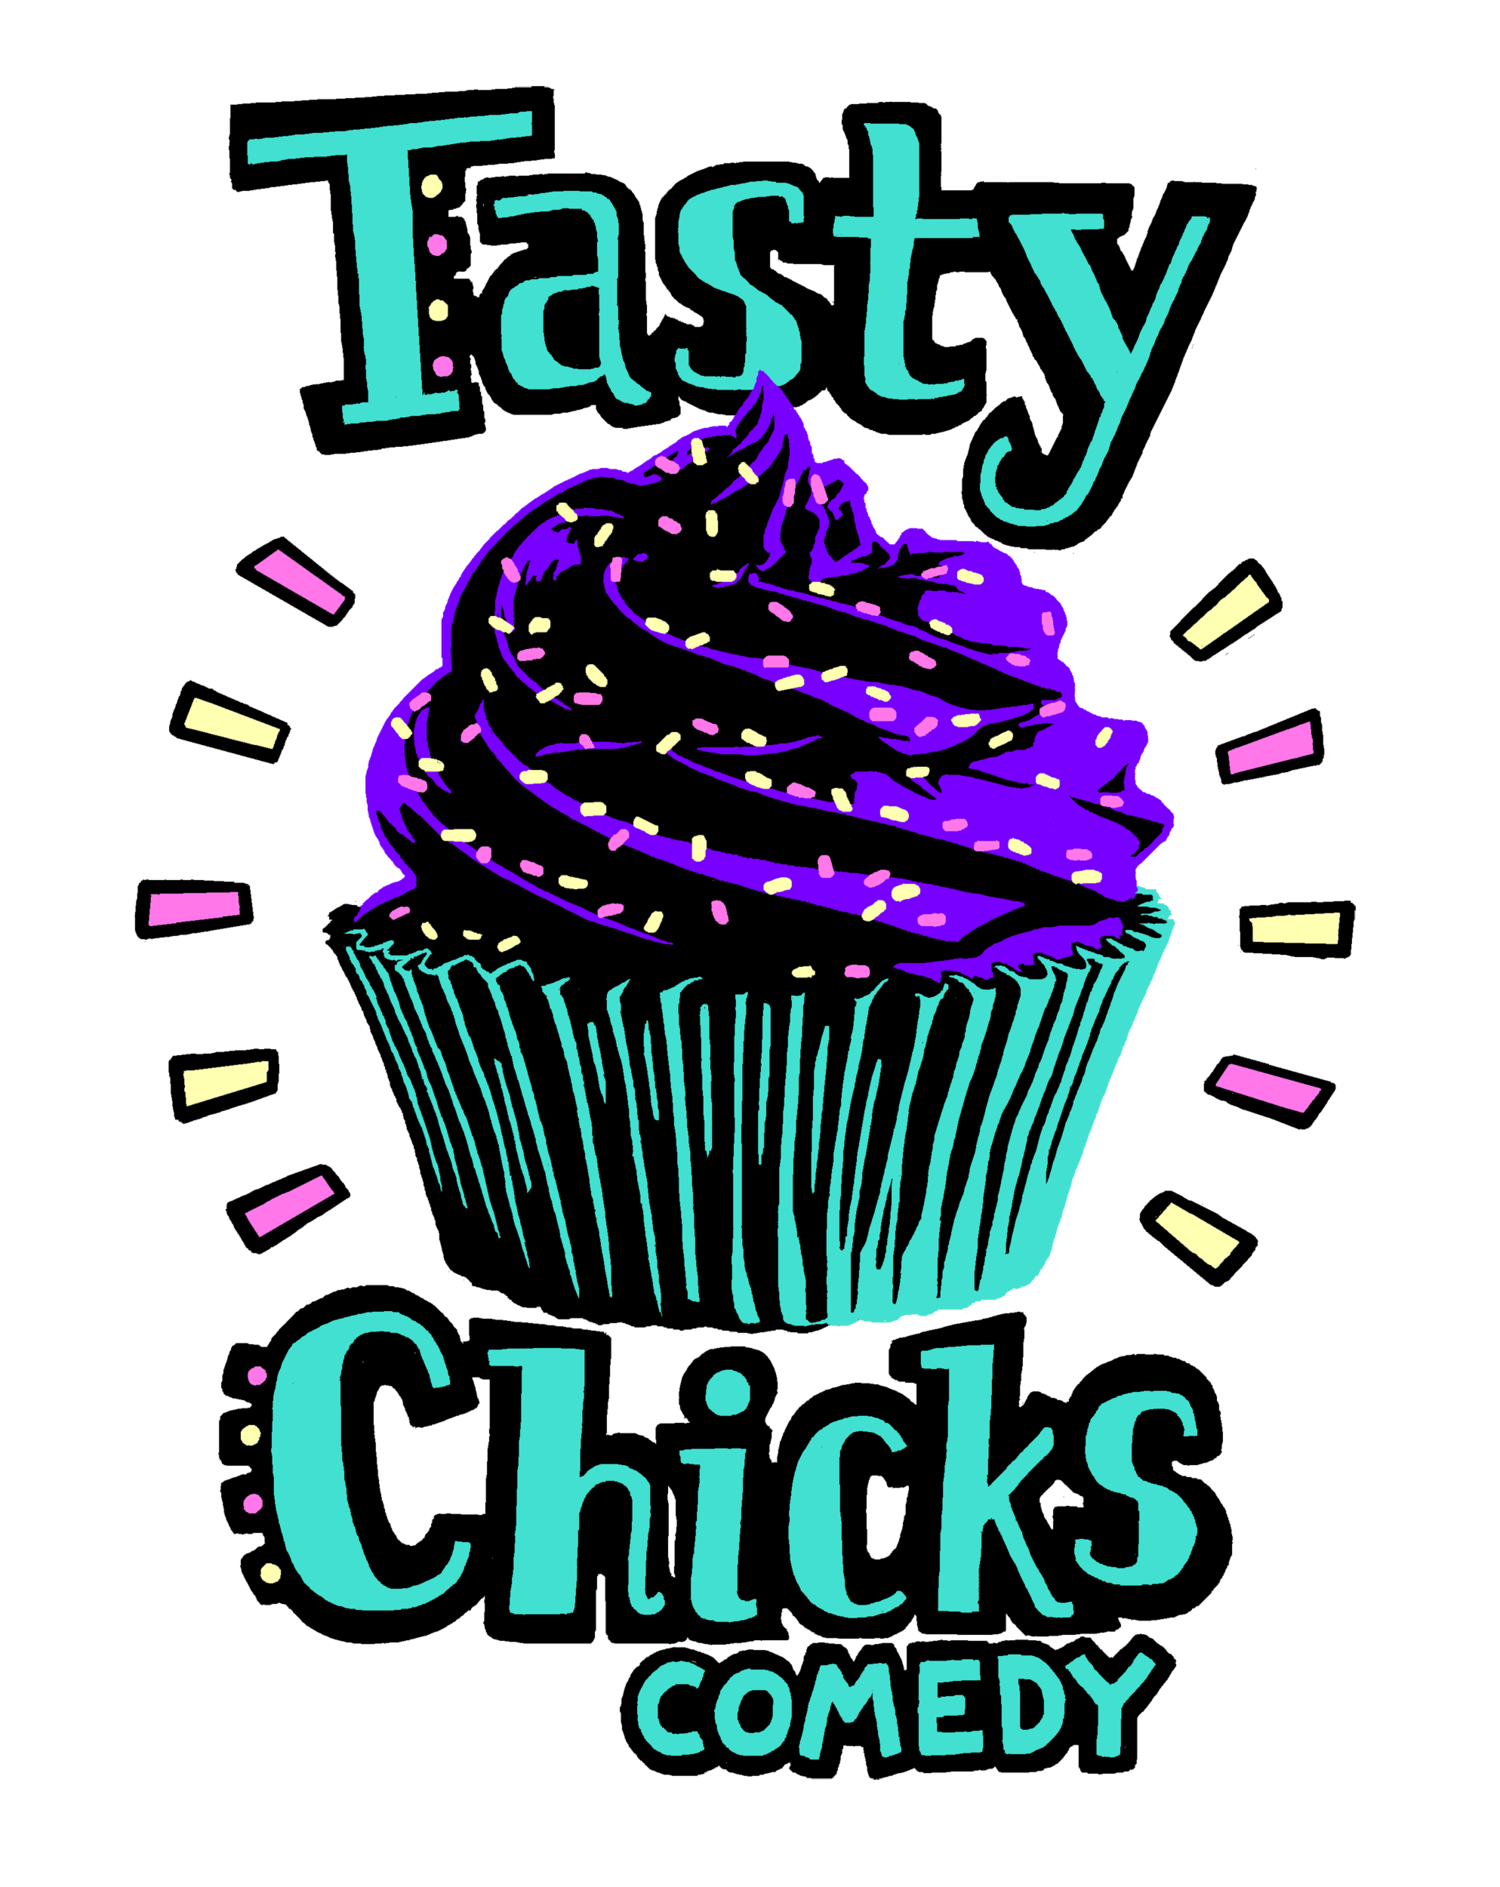 Tasty Chicks Comedy